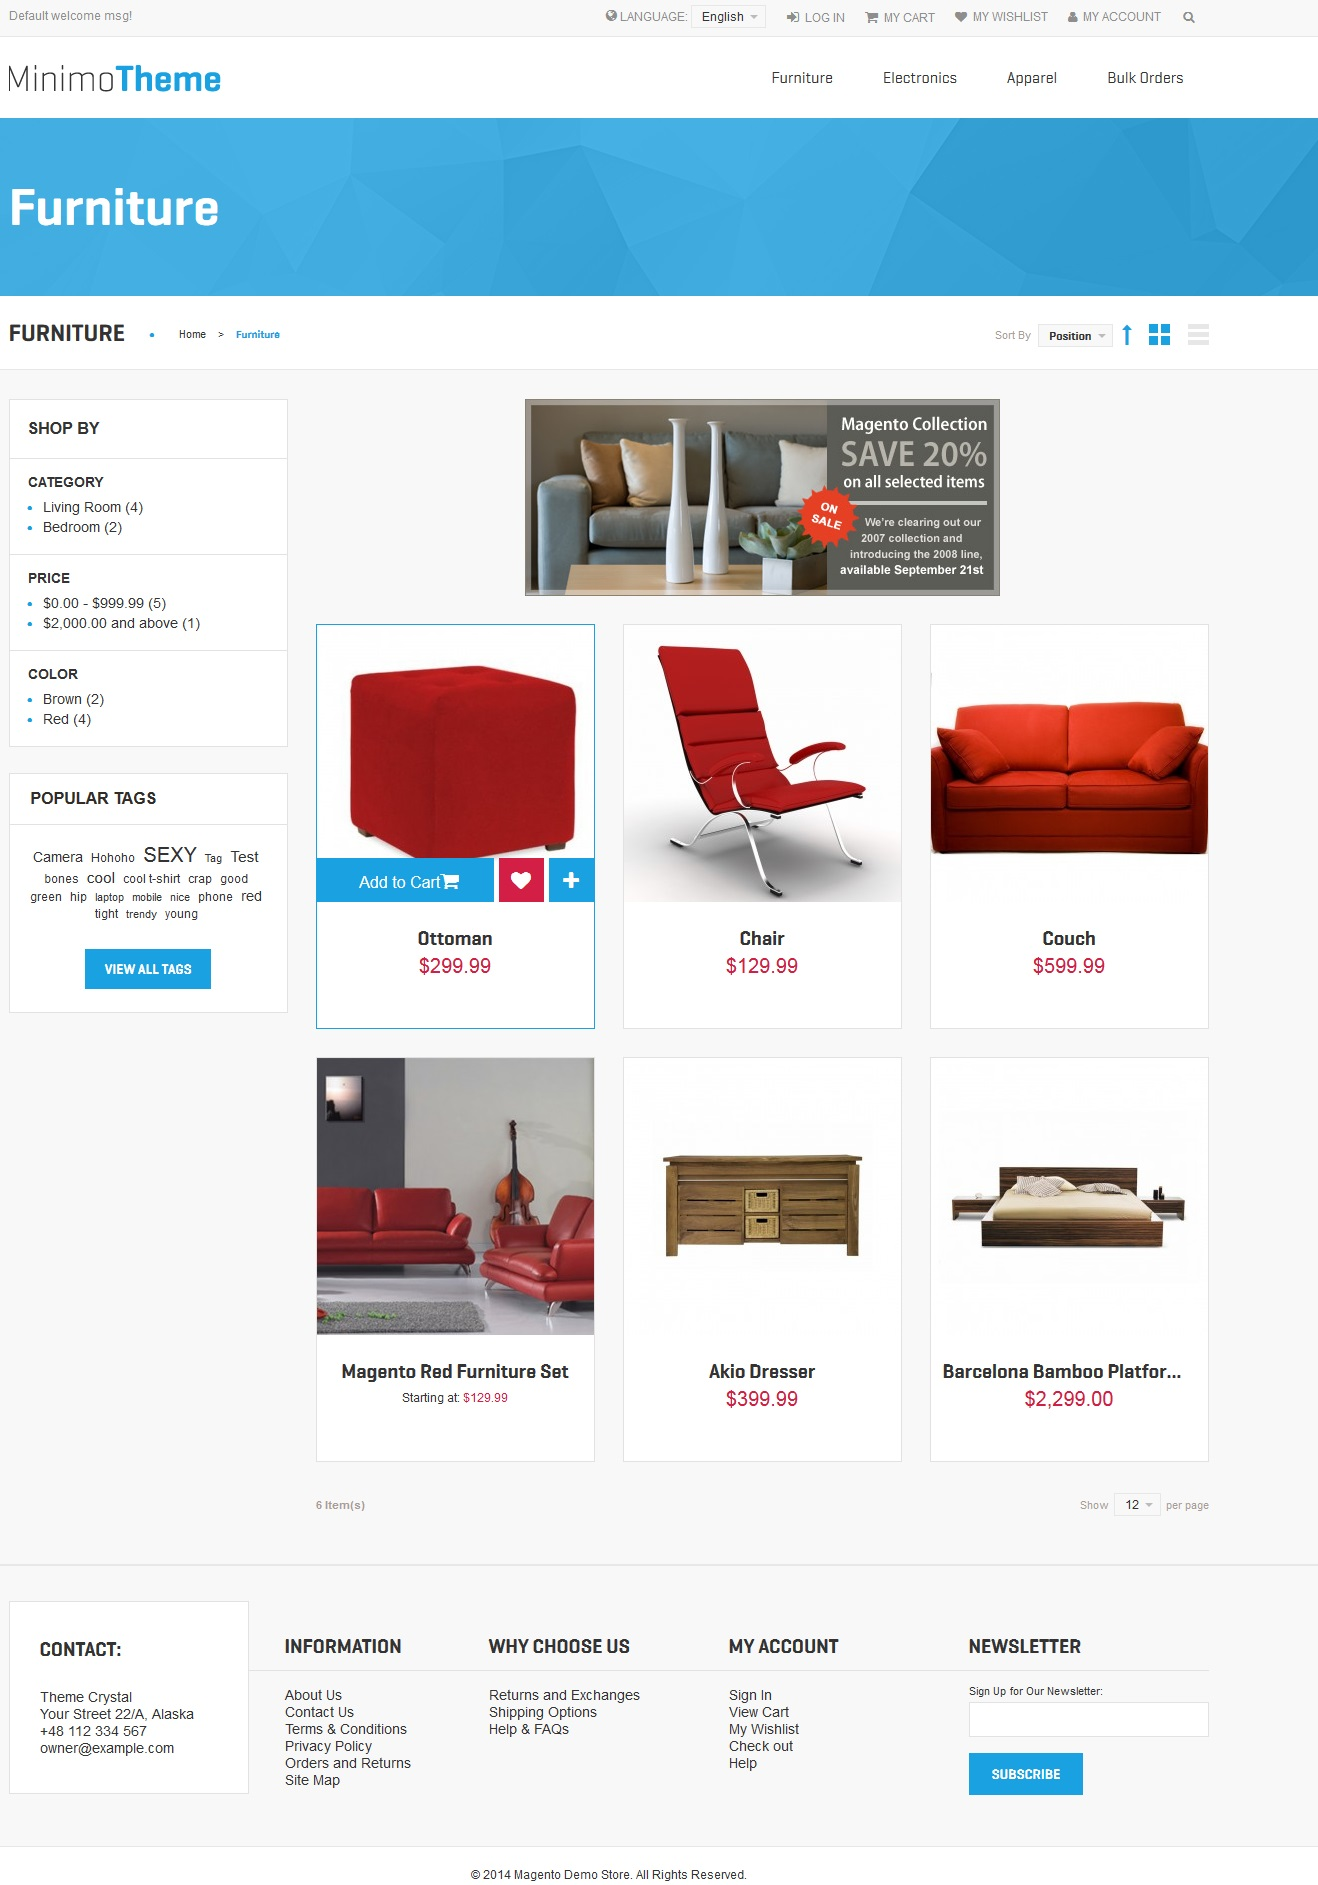 Minimo - Theme For Magento: Screen 3